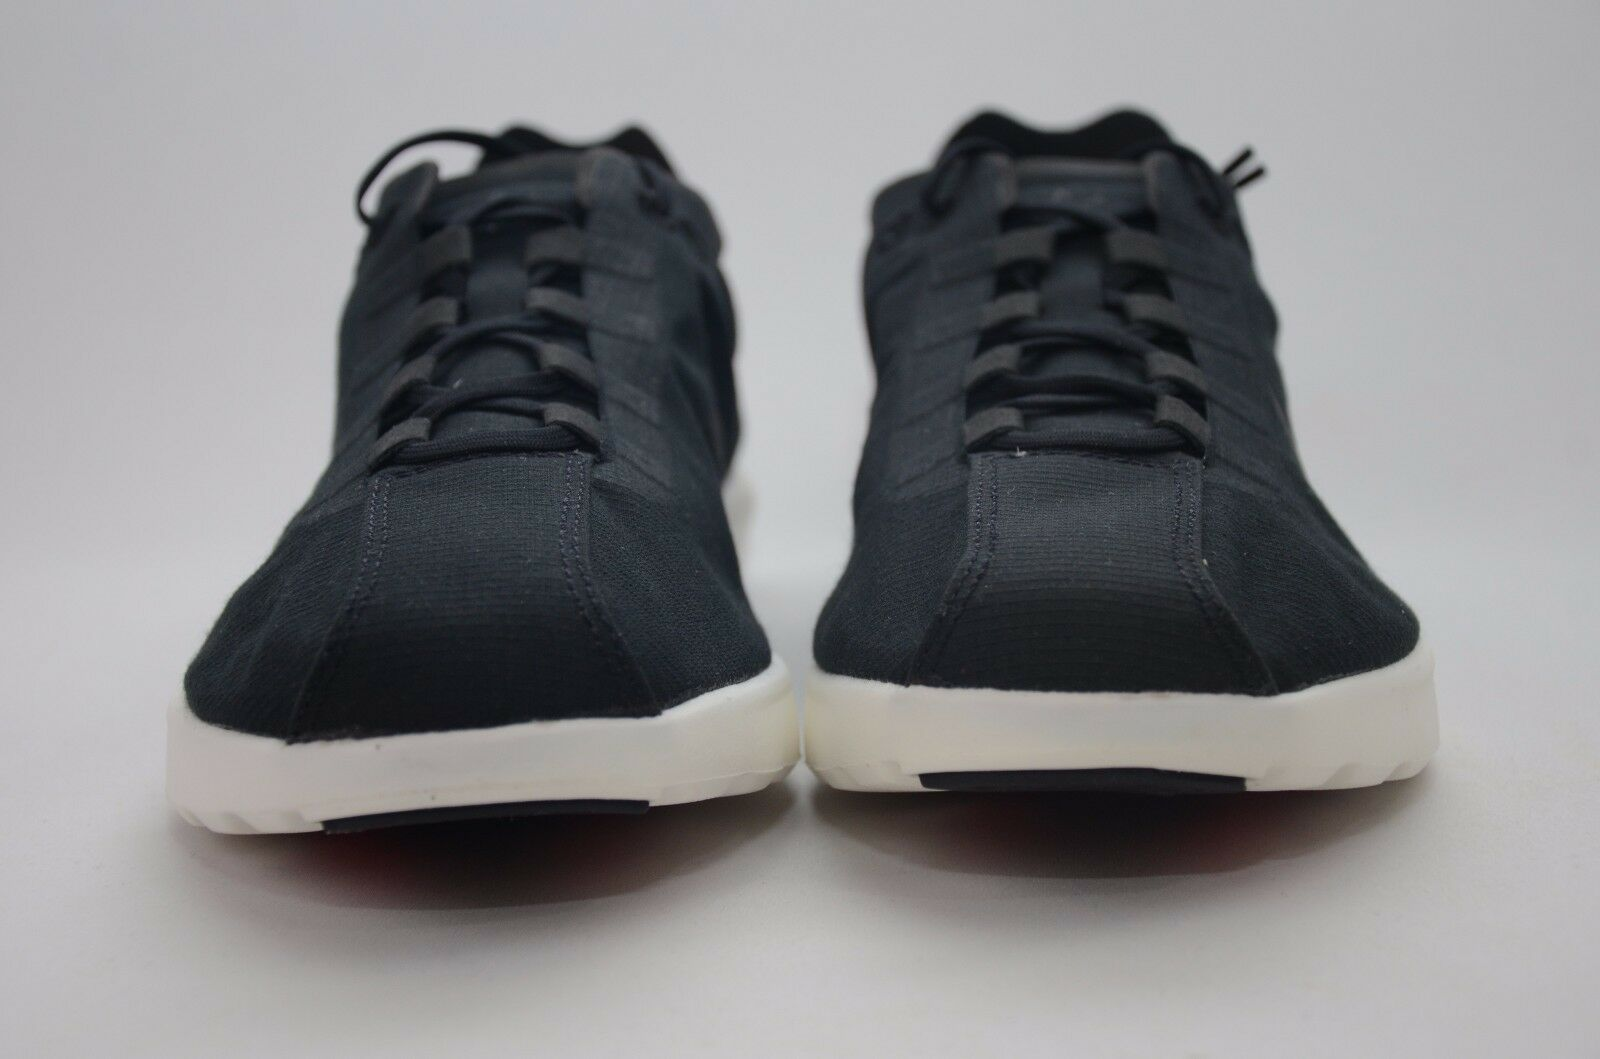 67b25c768c8 ... NikeLab Mayfly Lite Black Men s Size 5-7 New in Box Box Box 909555 001  ...